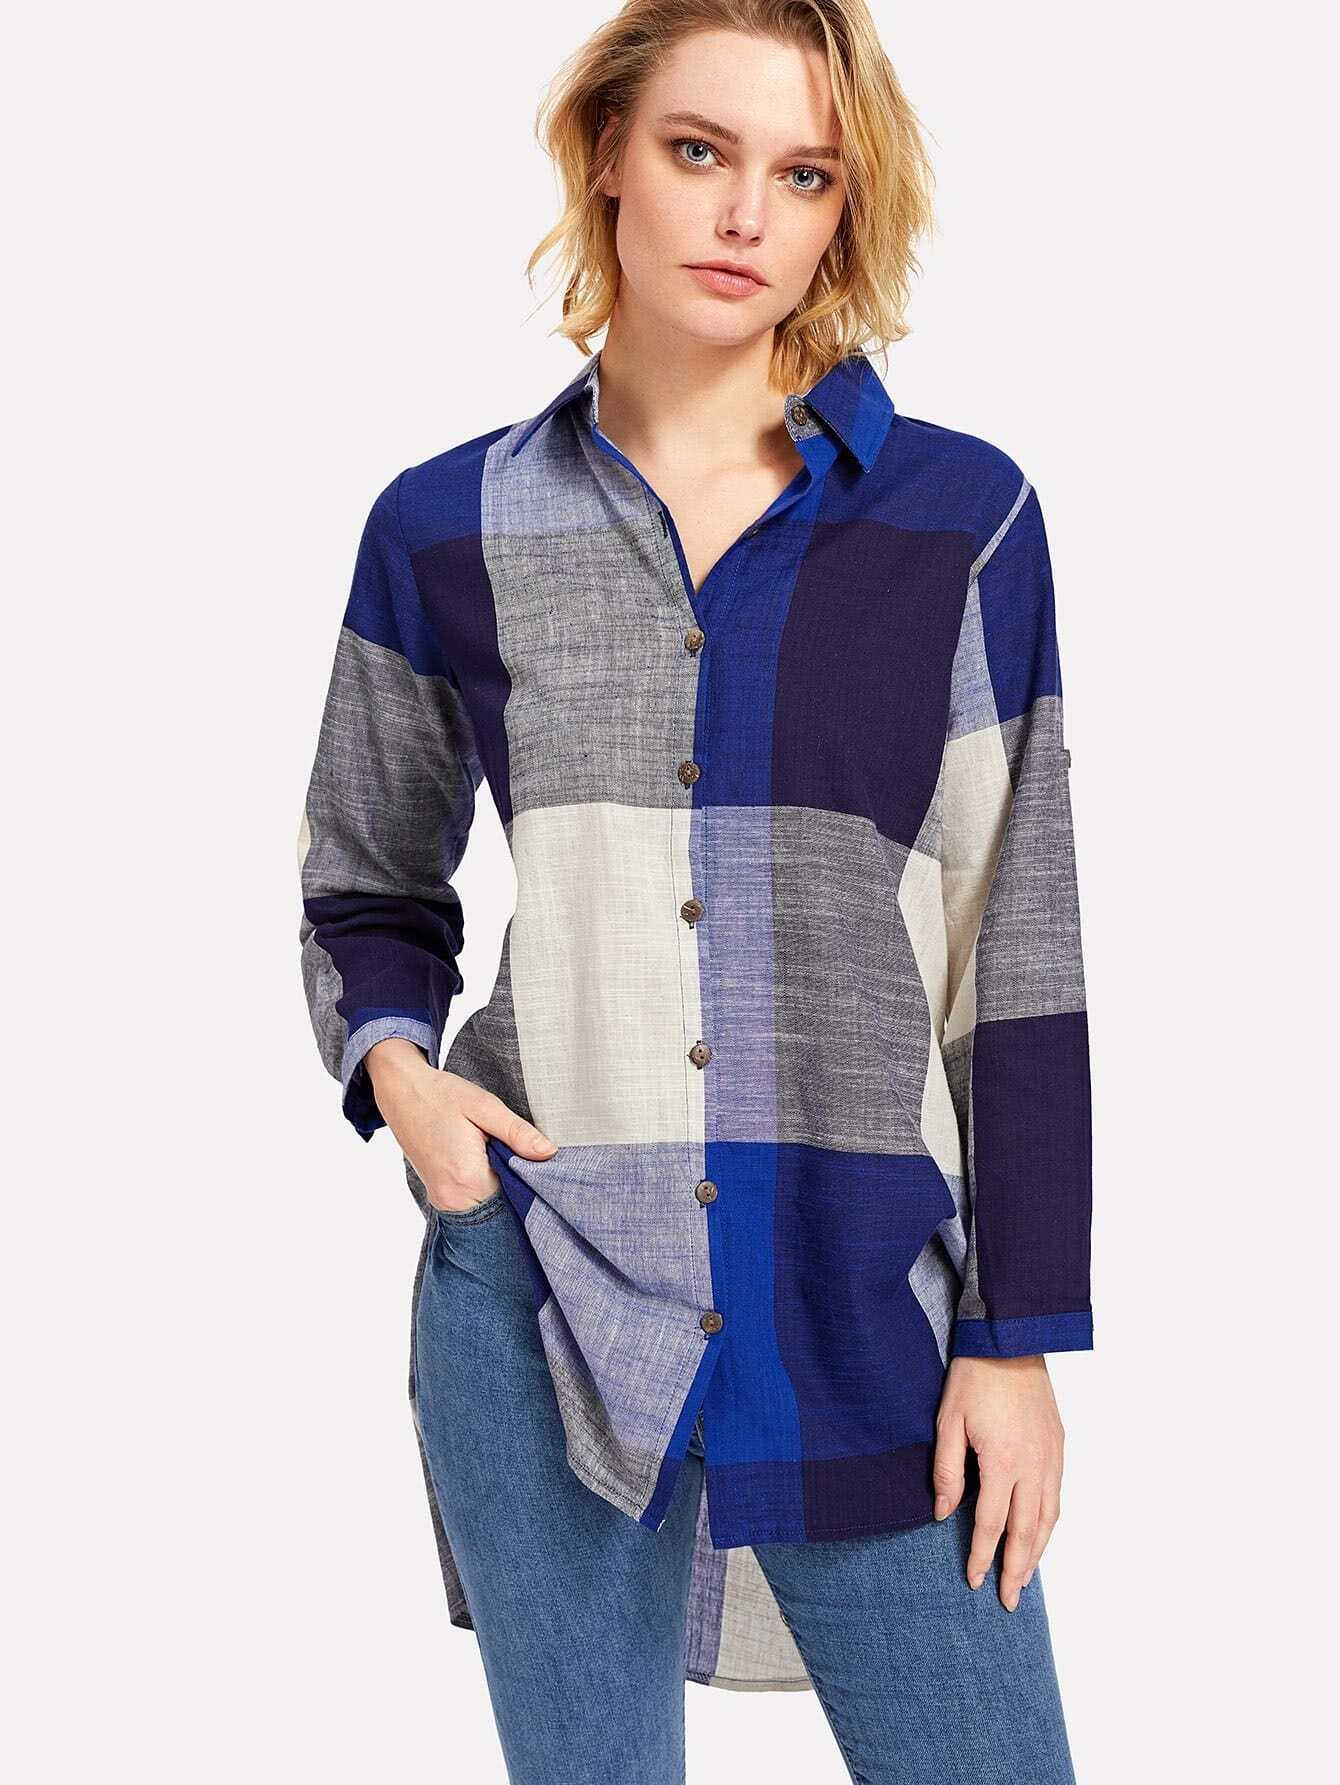 Slit Side High Low Plaid Shirt side slit high low shirt collar long sleeve shirt